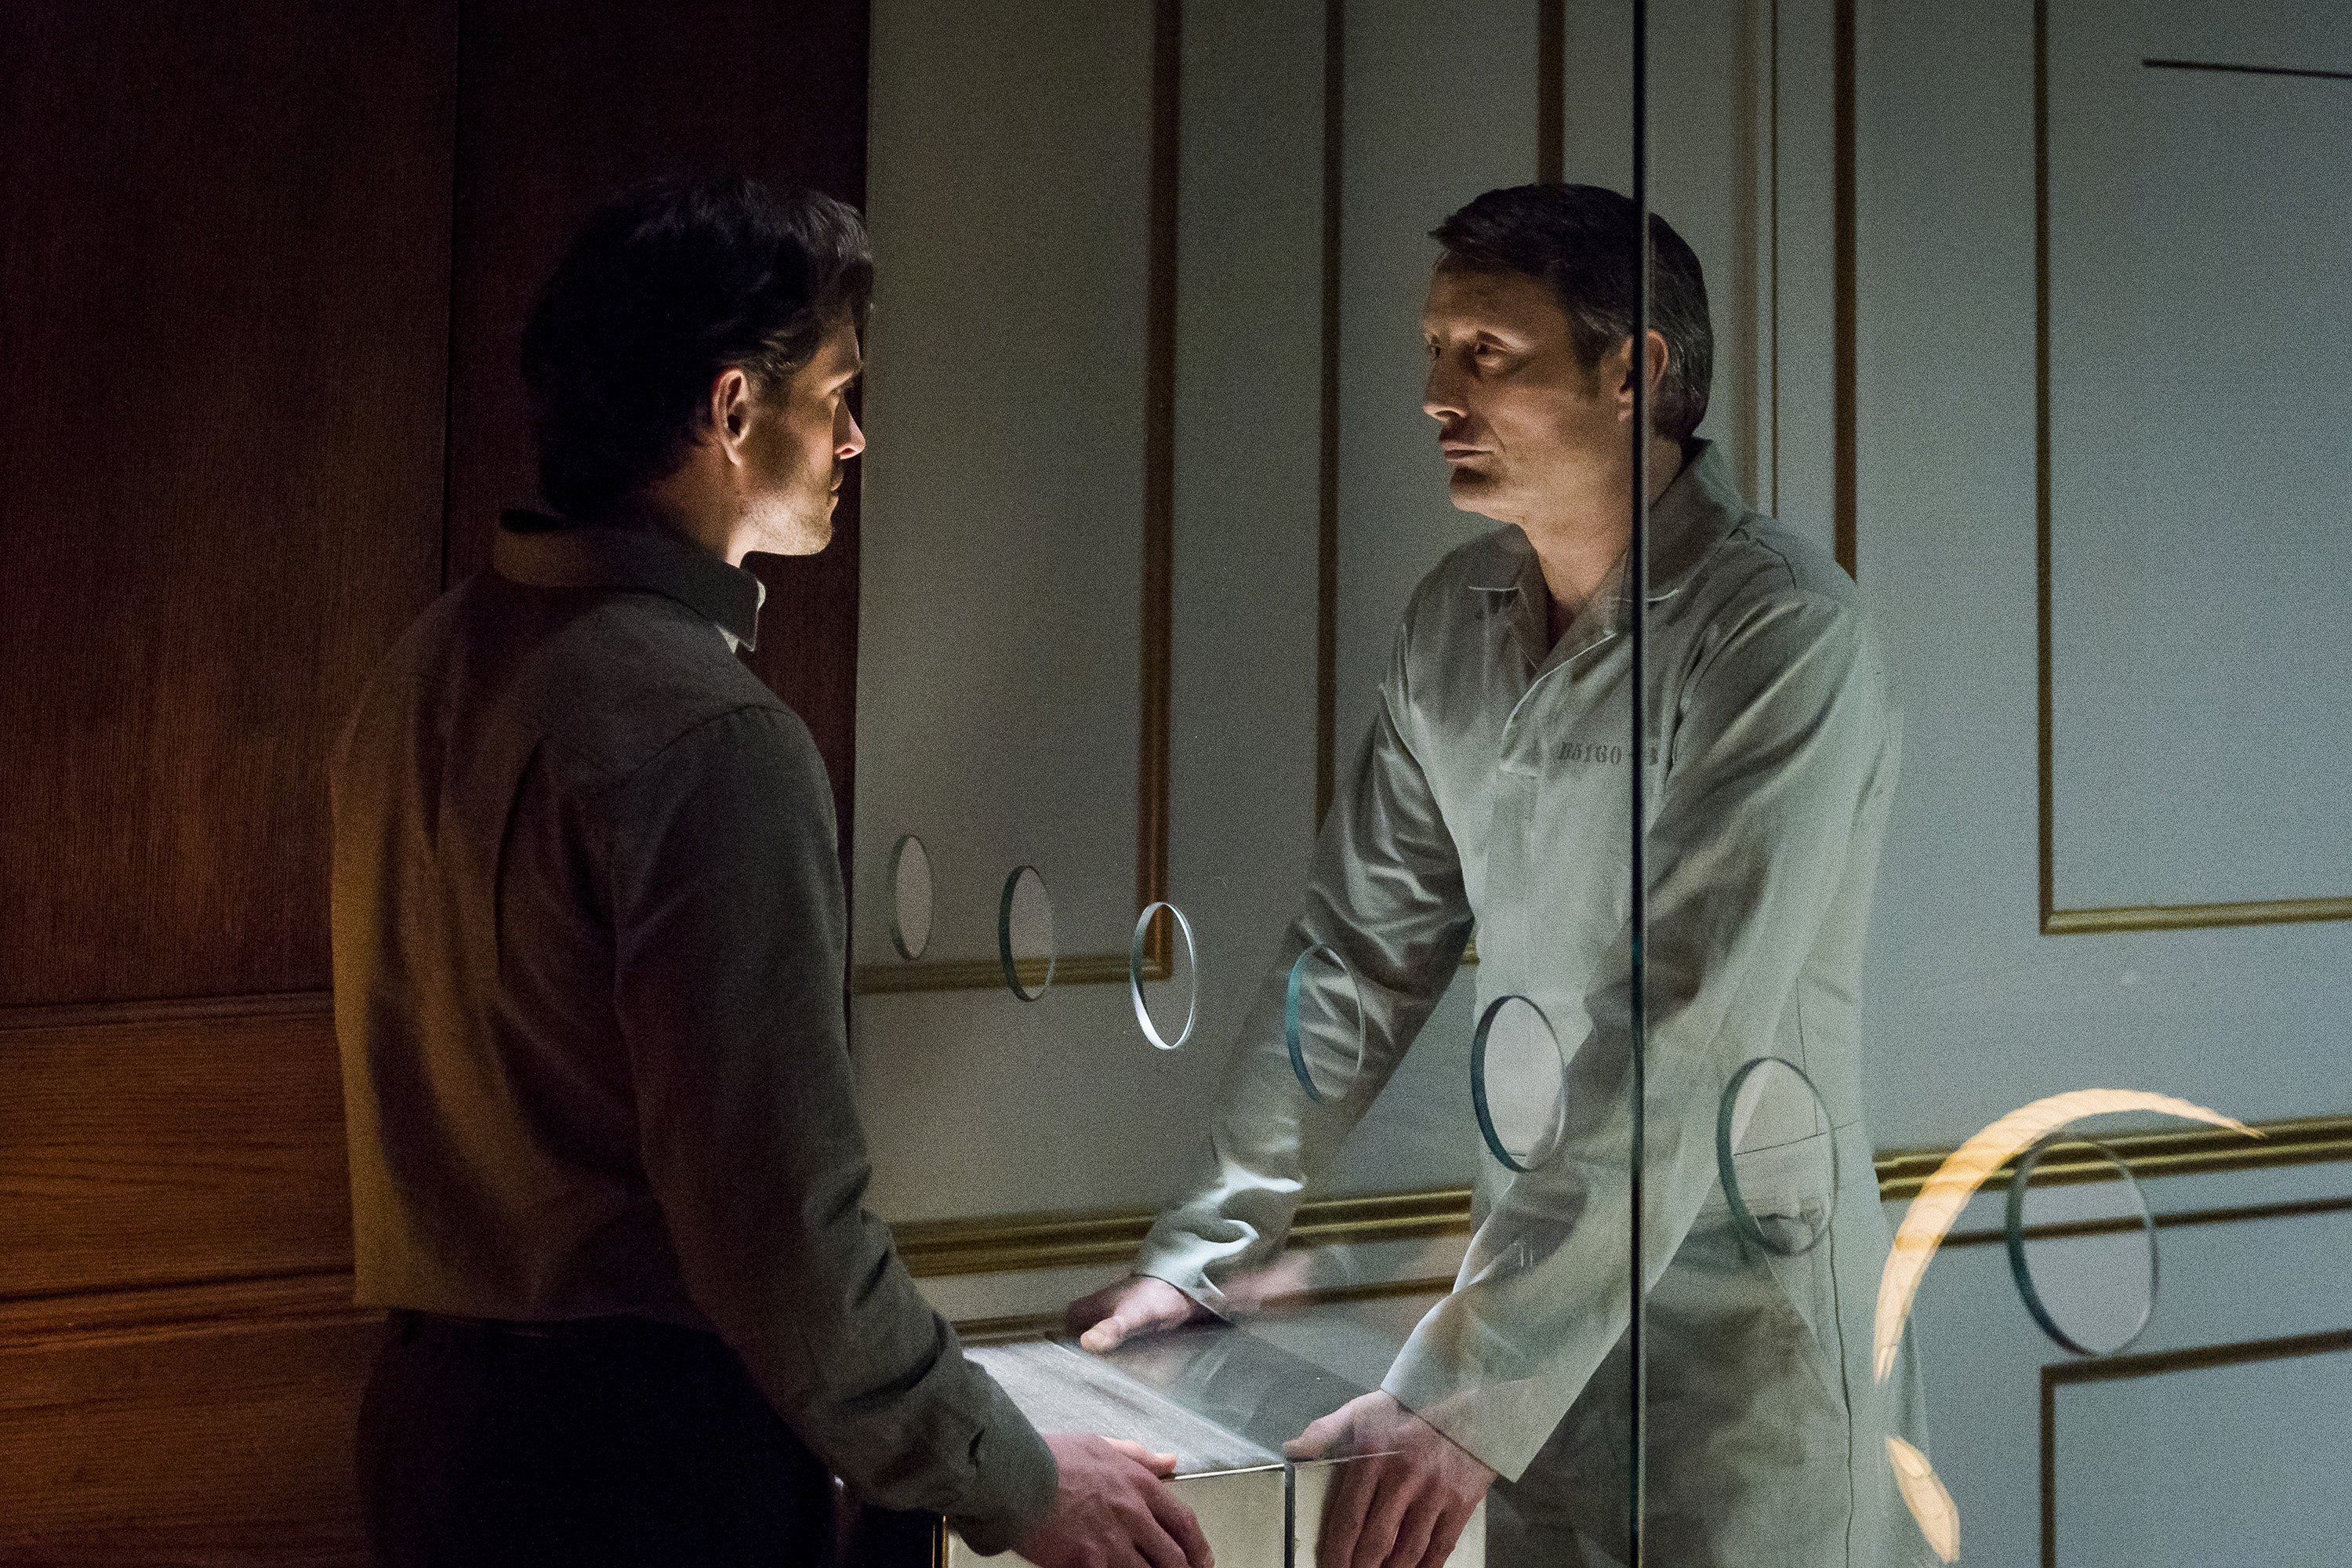 Hannibal-Episode-3-10-And-the-Woman-Clothed-in-Sun-hannibal-tv-series-38691316-3000-2000